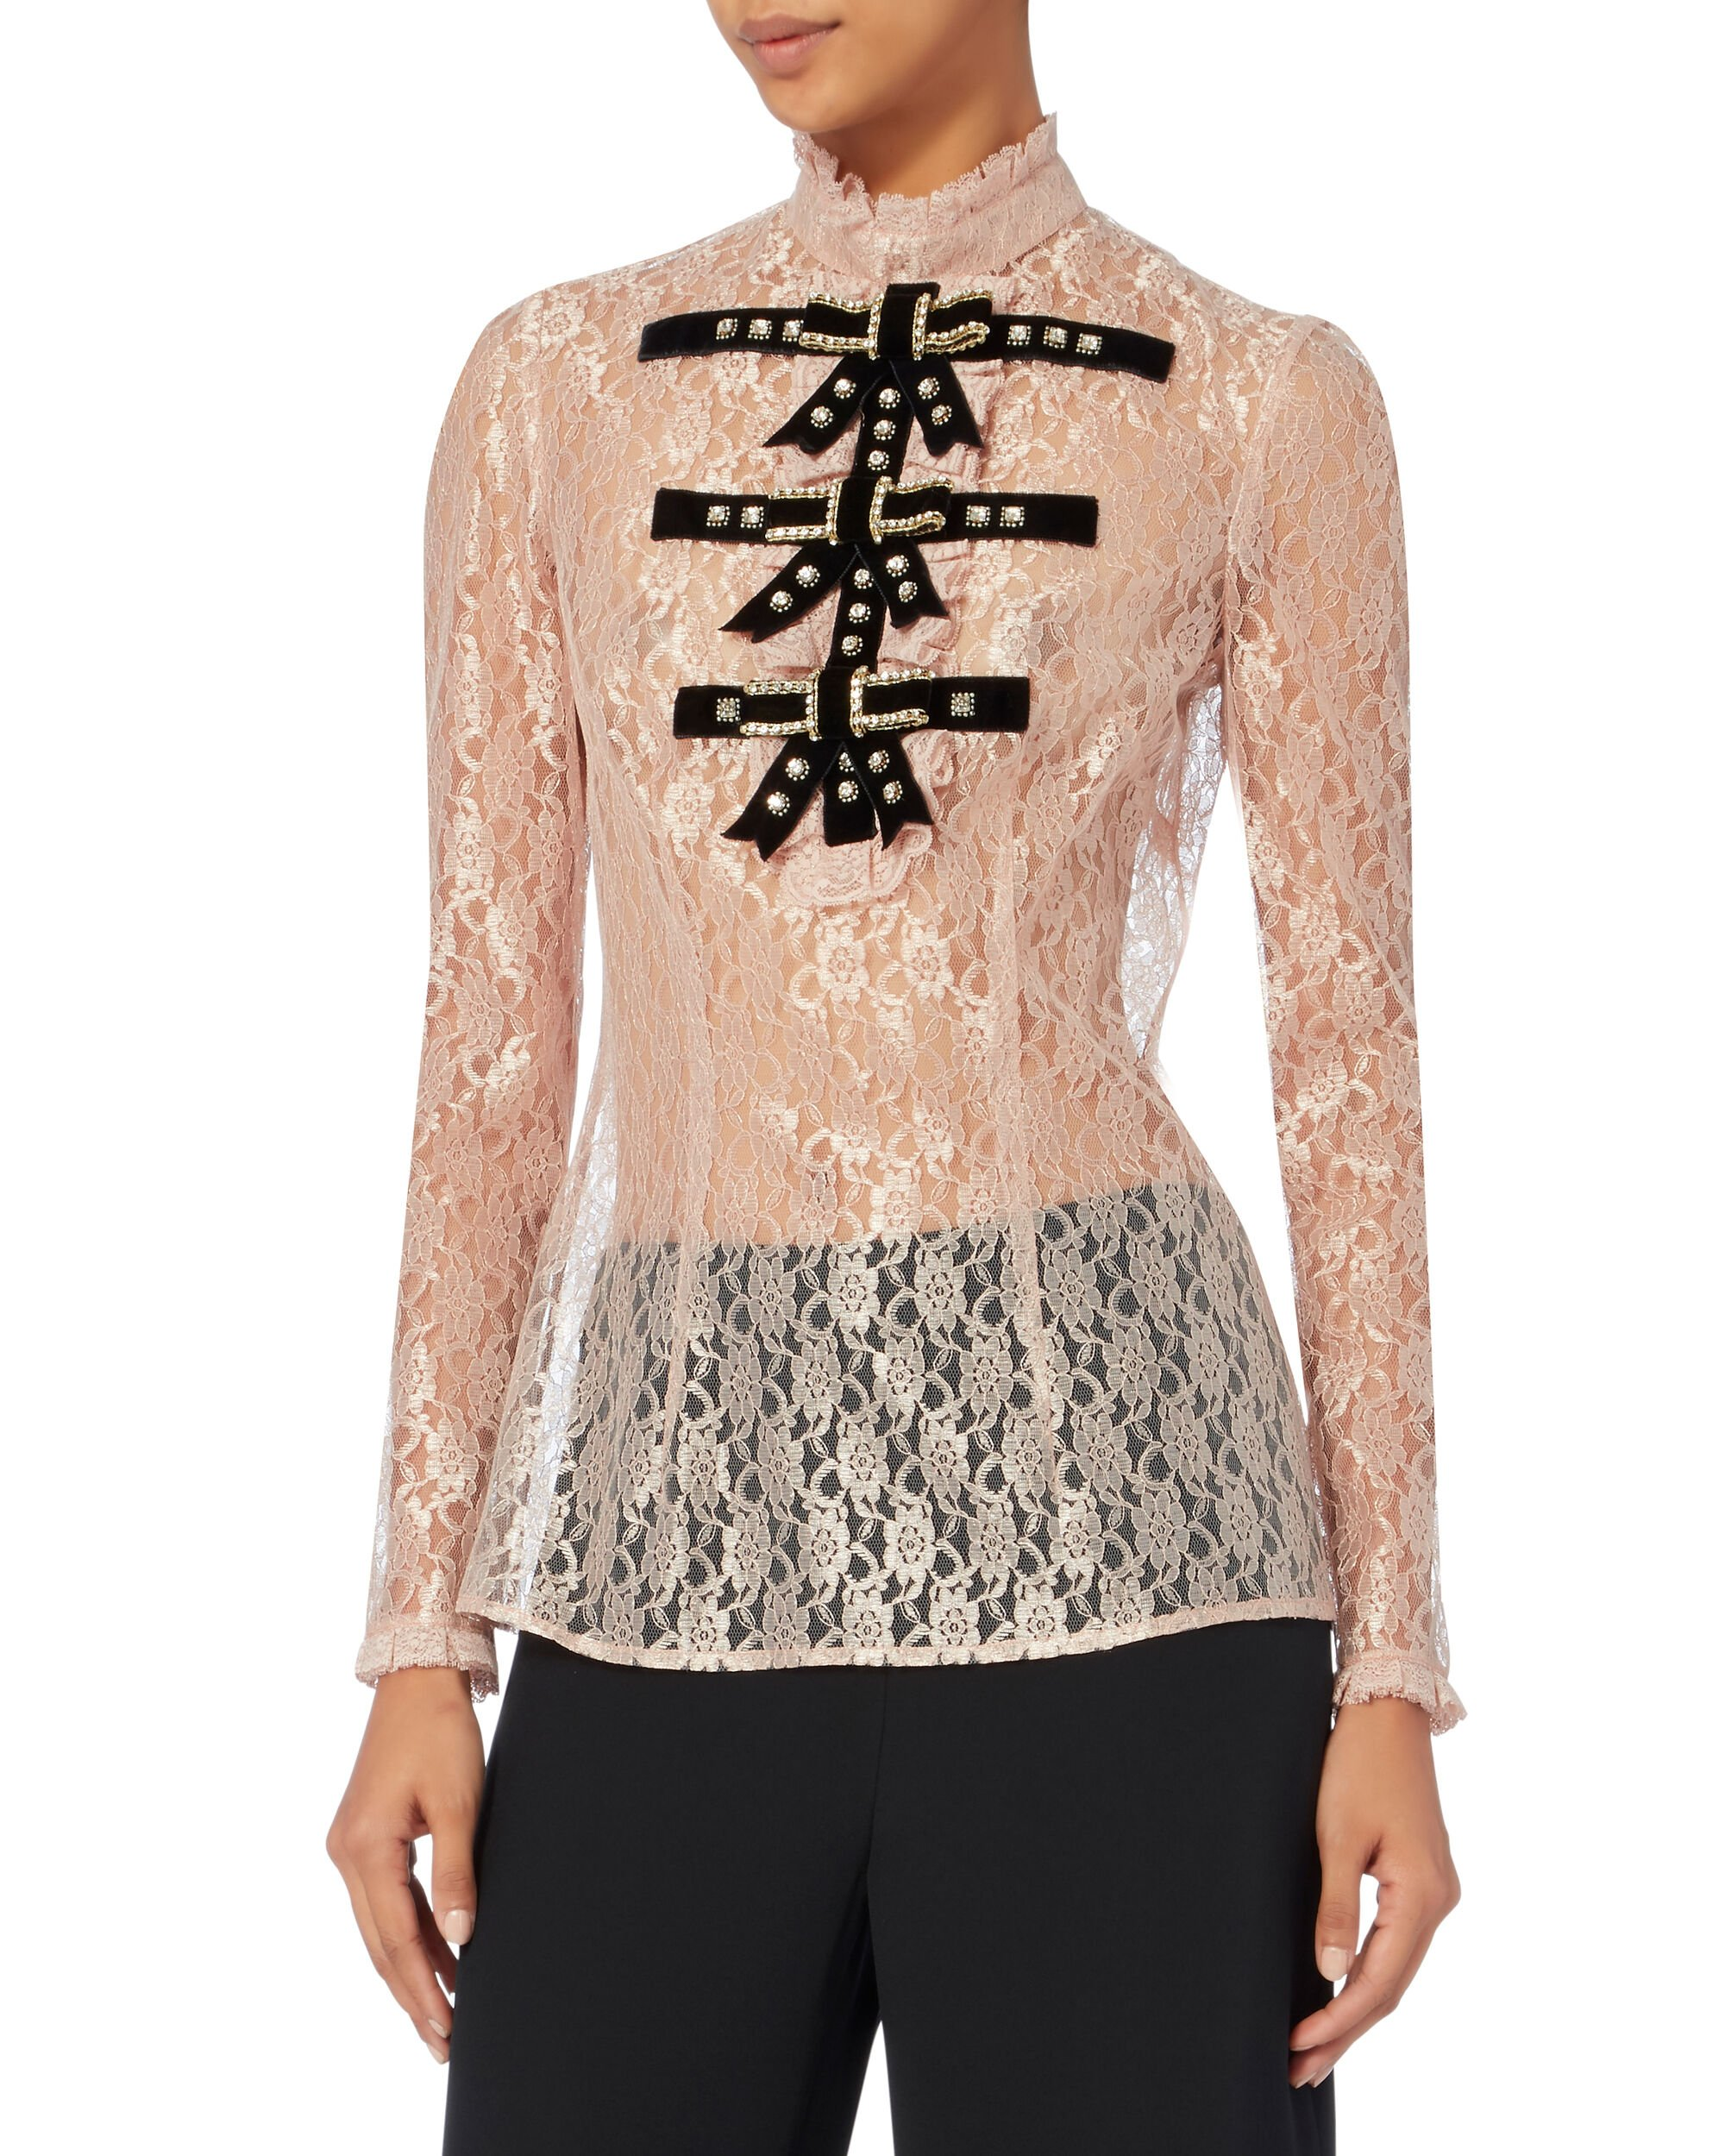 Crystal-Embellished Bow Tie Lace Top, PINK, hi-res